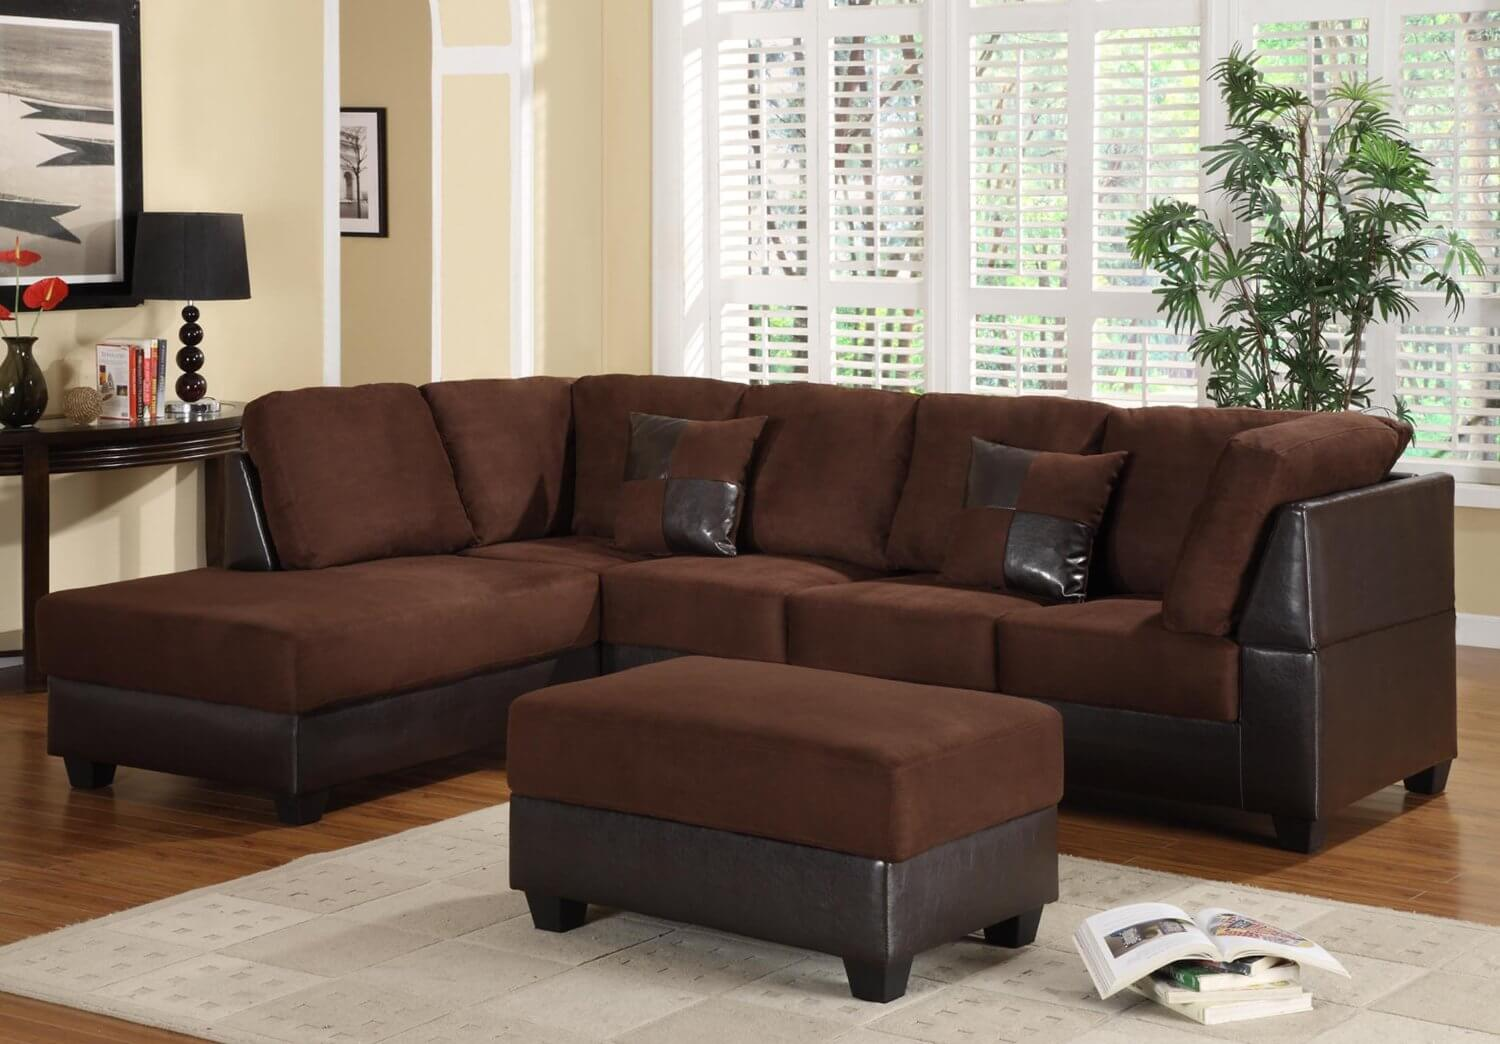 40 cheap sectional sofas under 500 for 2018 - Entire Living Room Furniture Sets